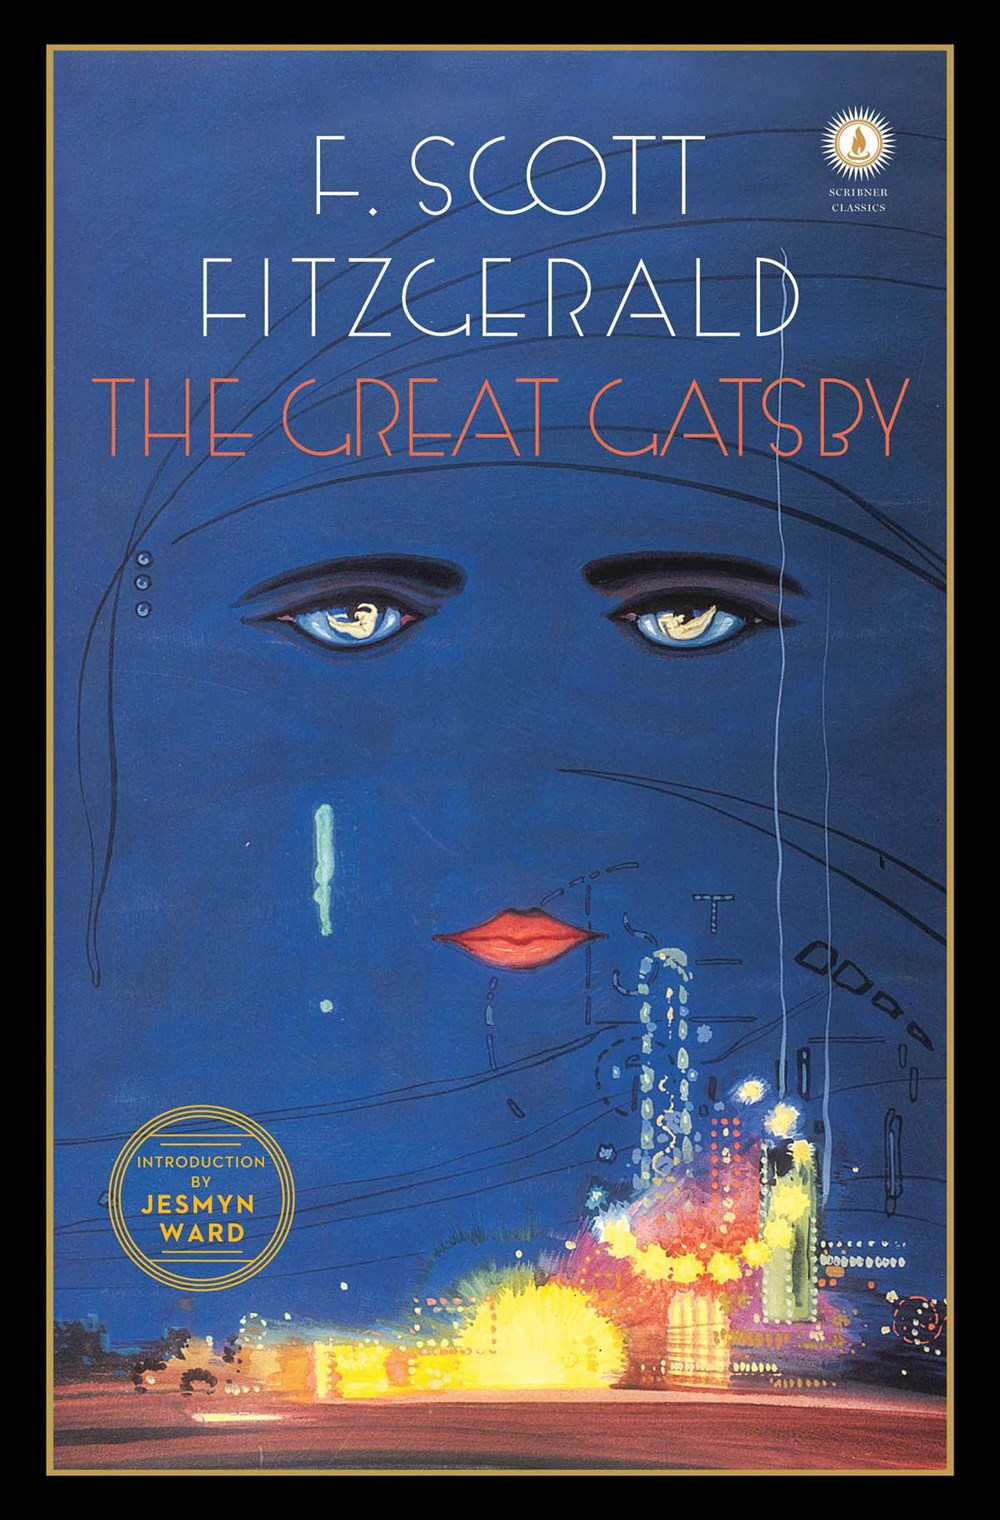 The Great Gatsby (Special edition)